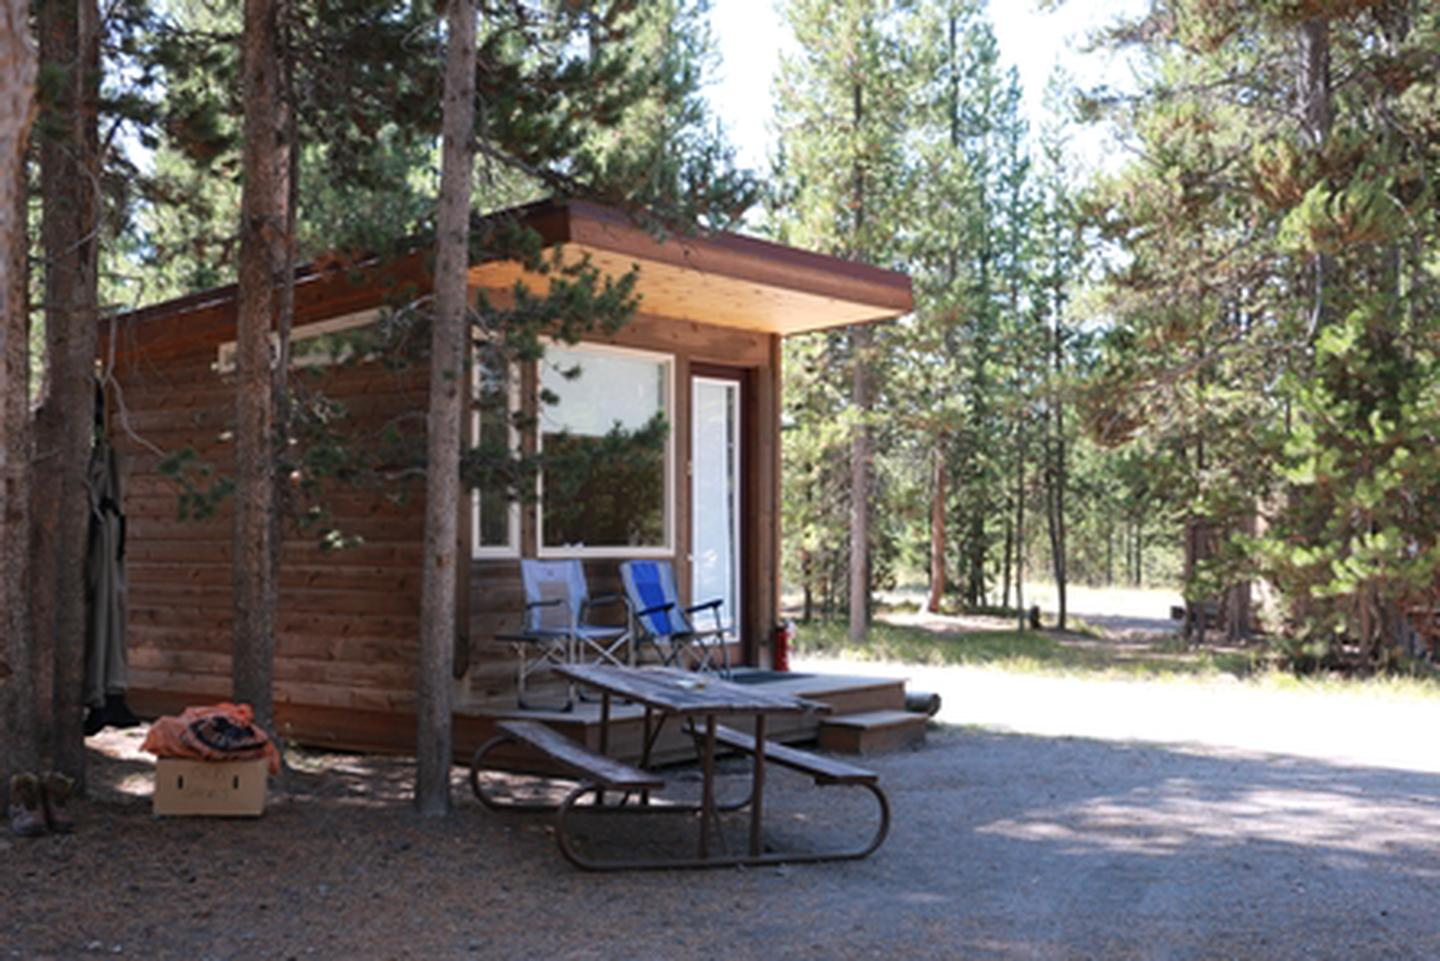 Headwaters Camper CabinHeadwaters Camper Cabins are scattered throughout the campground and include double-double or double-single bunk-style beds. While the bunks are padded, bedding and pillows not included. Guests are encouraged to bring their own linens.